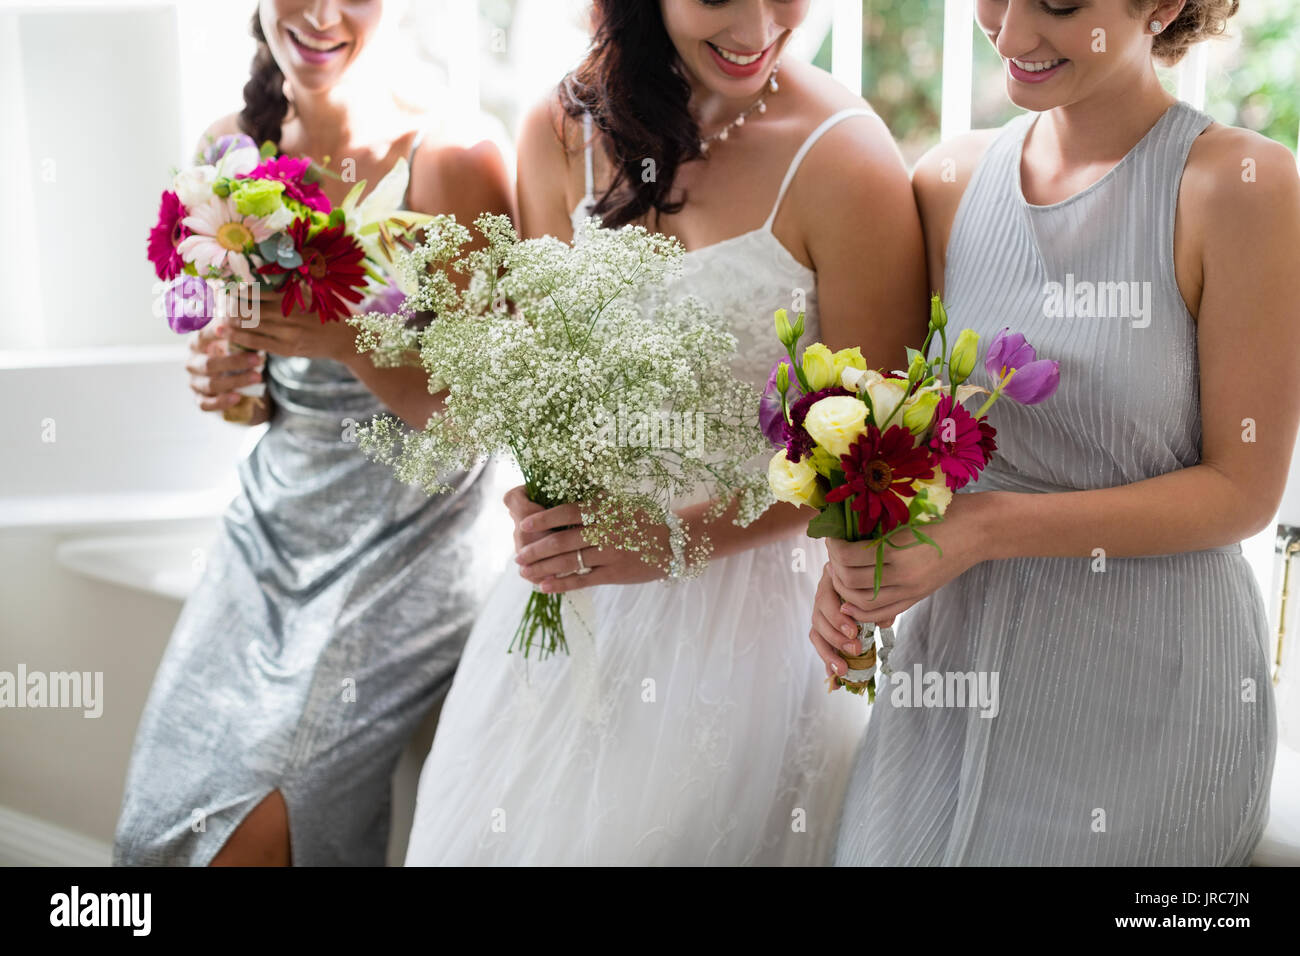 Bride and bridesmaids standing with bouquet at home Stock Photo